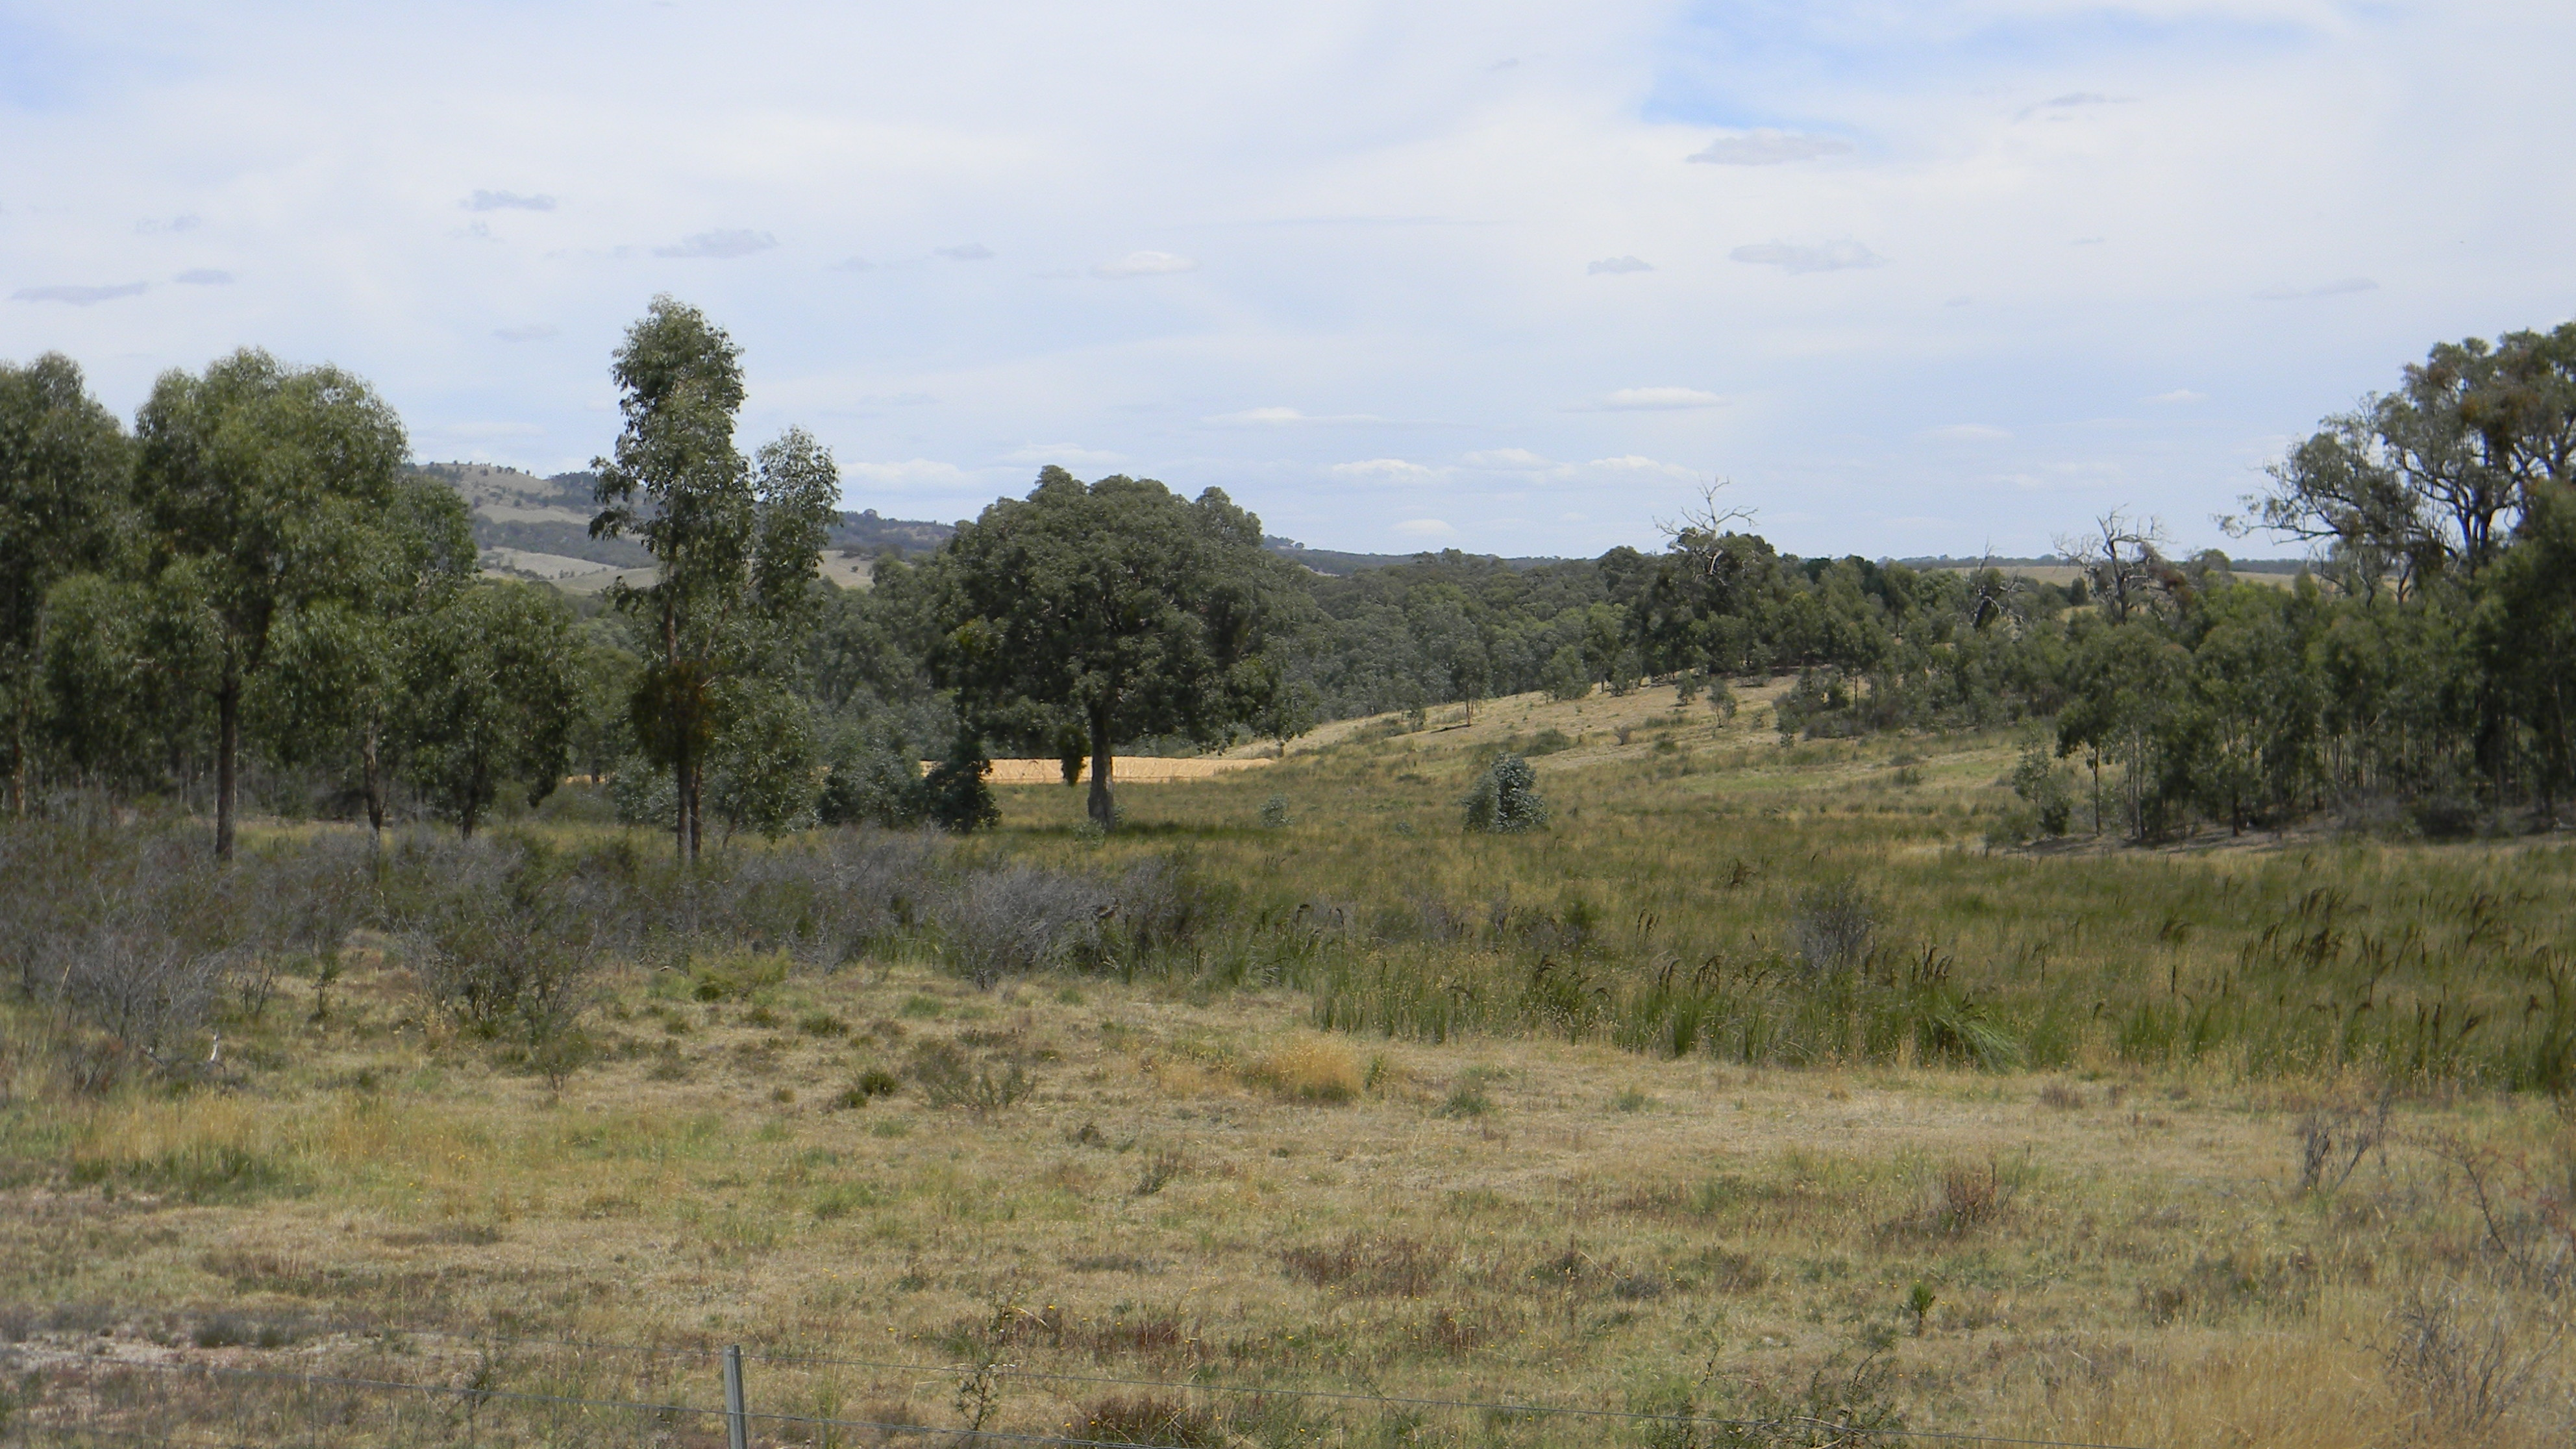 Northide Nudist Club Panoramic Views. Nudism / naturism in central victoria near melbourne